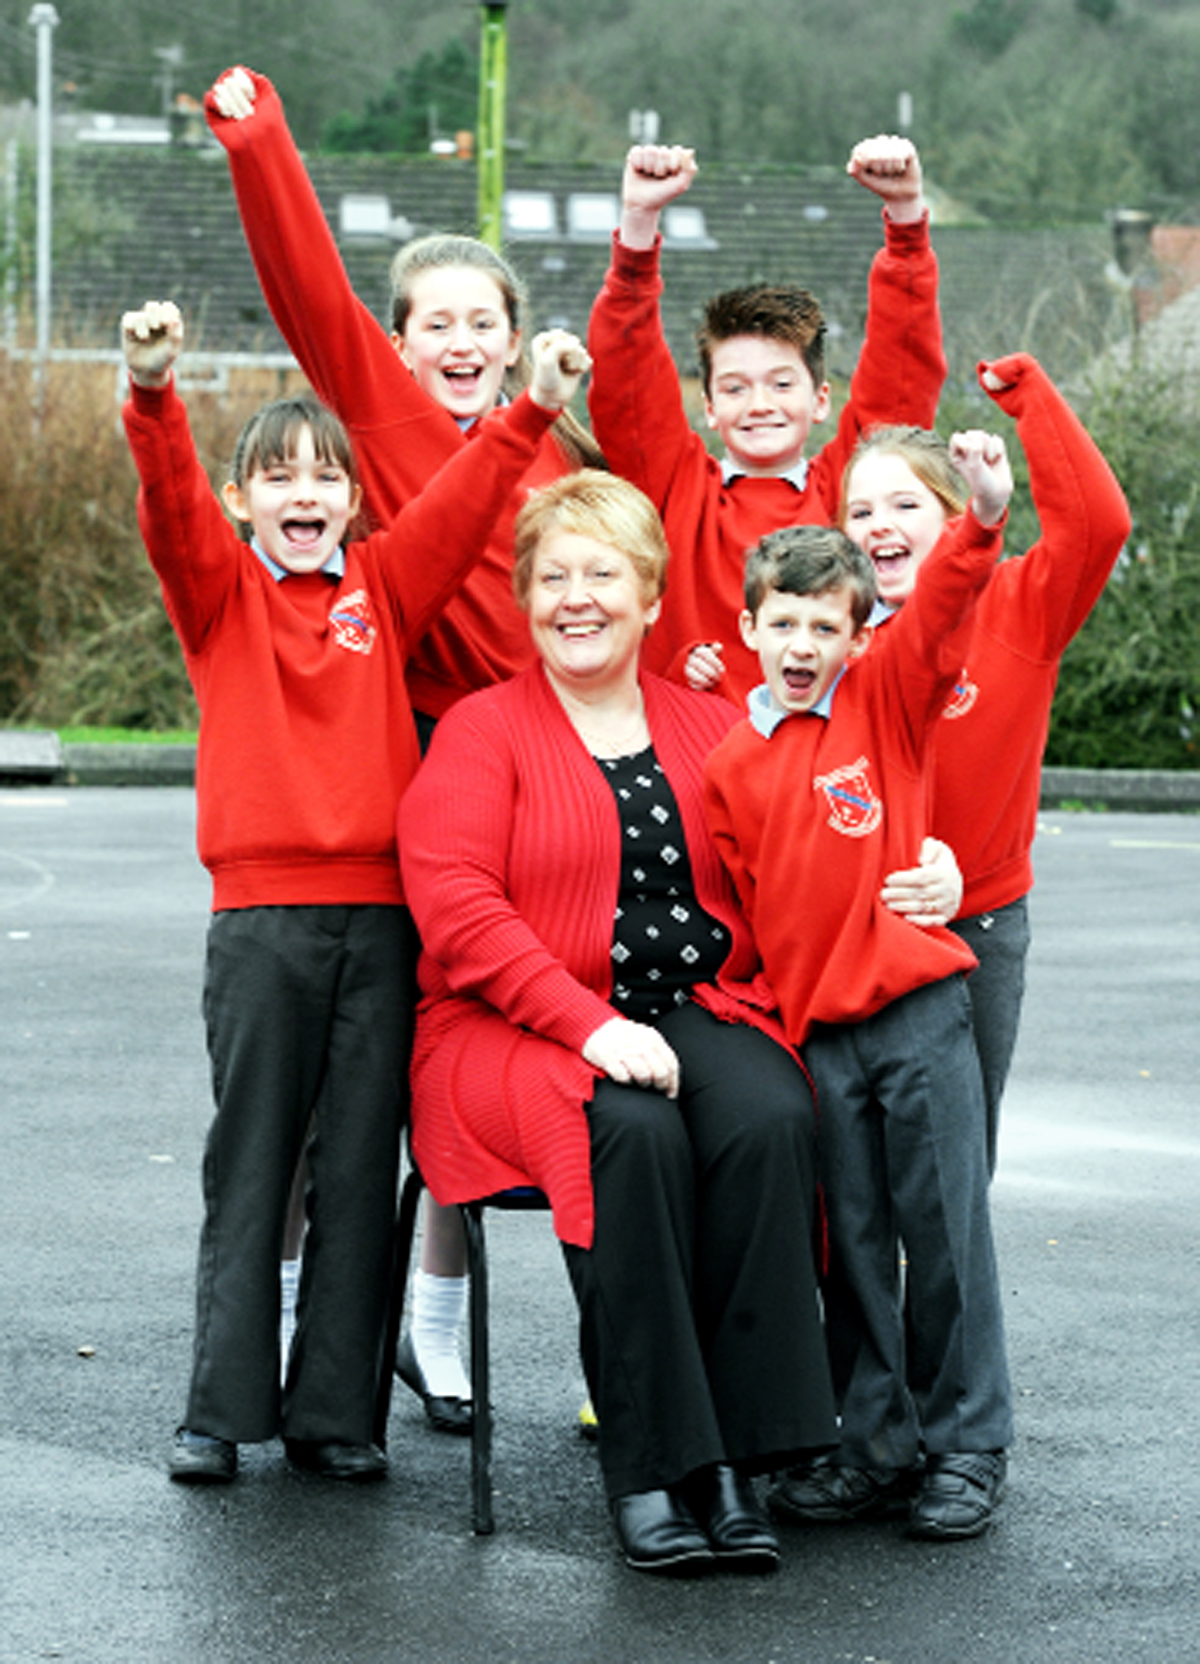 Alison Howarth, headteacher at St Barnabas Primary School, retires at the end of the summer term after seven years at the school and 40 years of teaching.